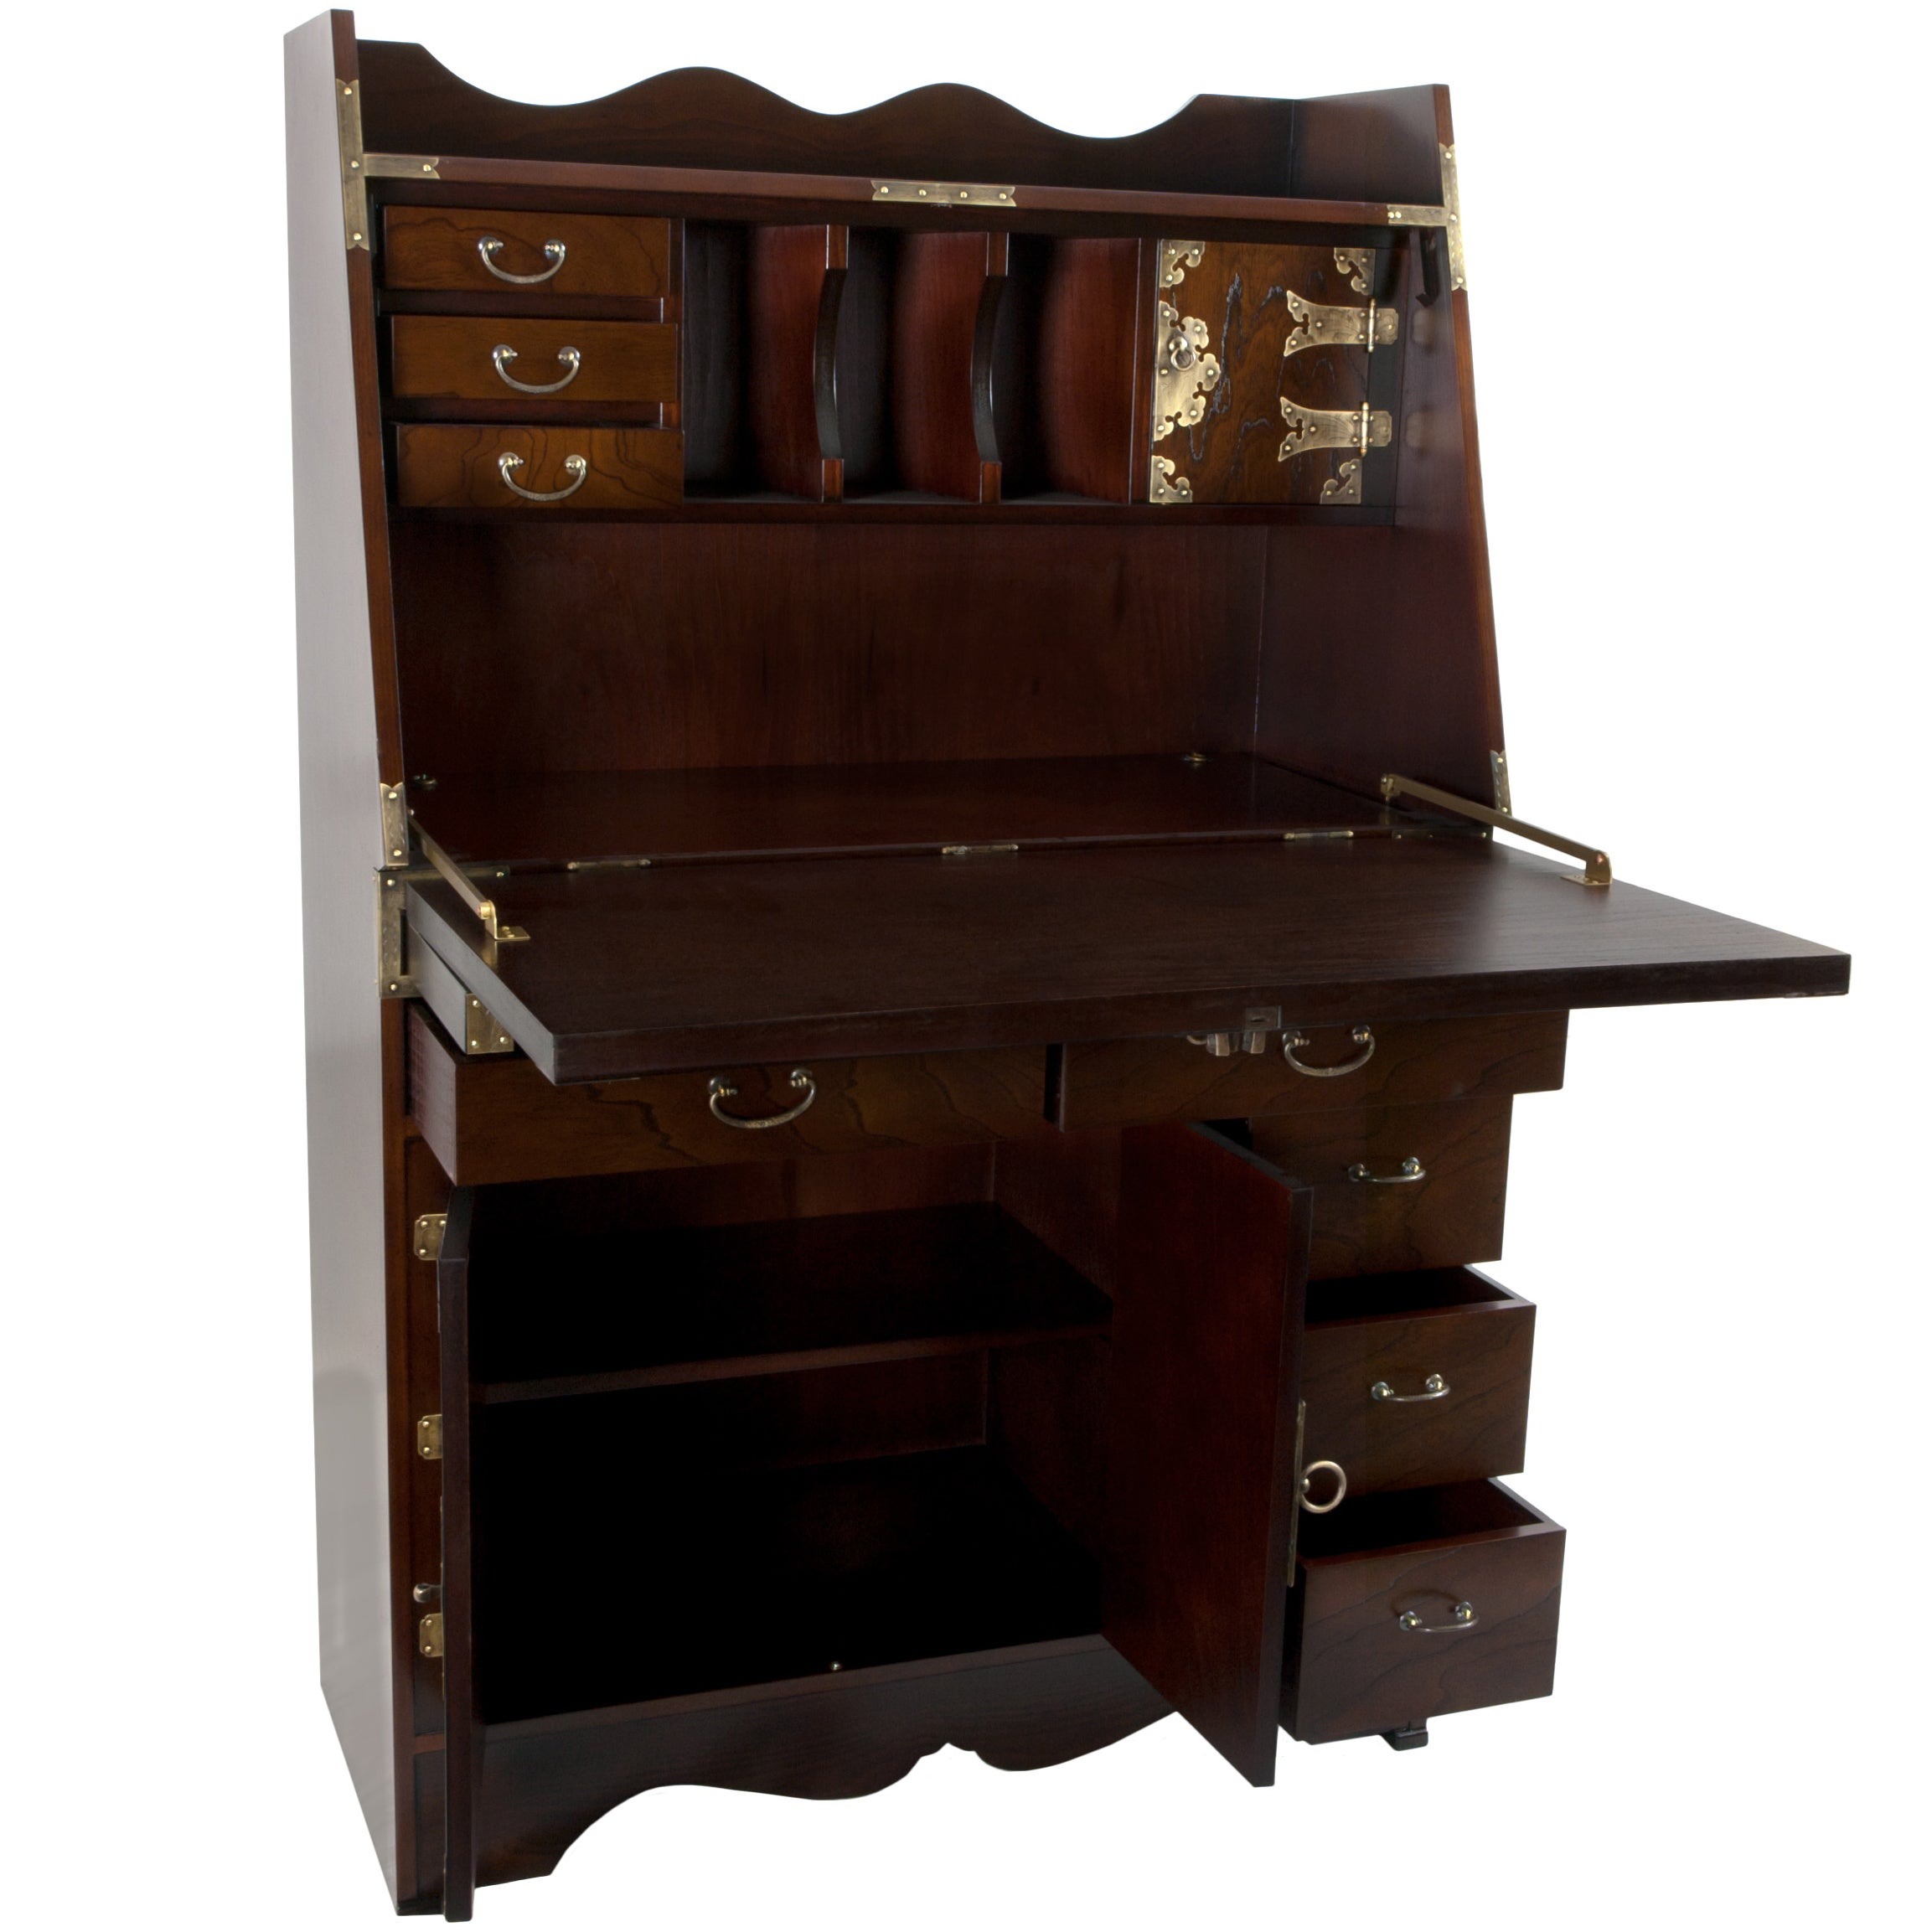 with desk keyboard well of teak lovely antique decor also computer home work done small help office ideas plus book square secretary interior and corner shelf your get hutch as fabulous stand the adjustable writing furniture drawer